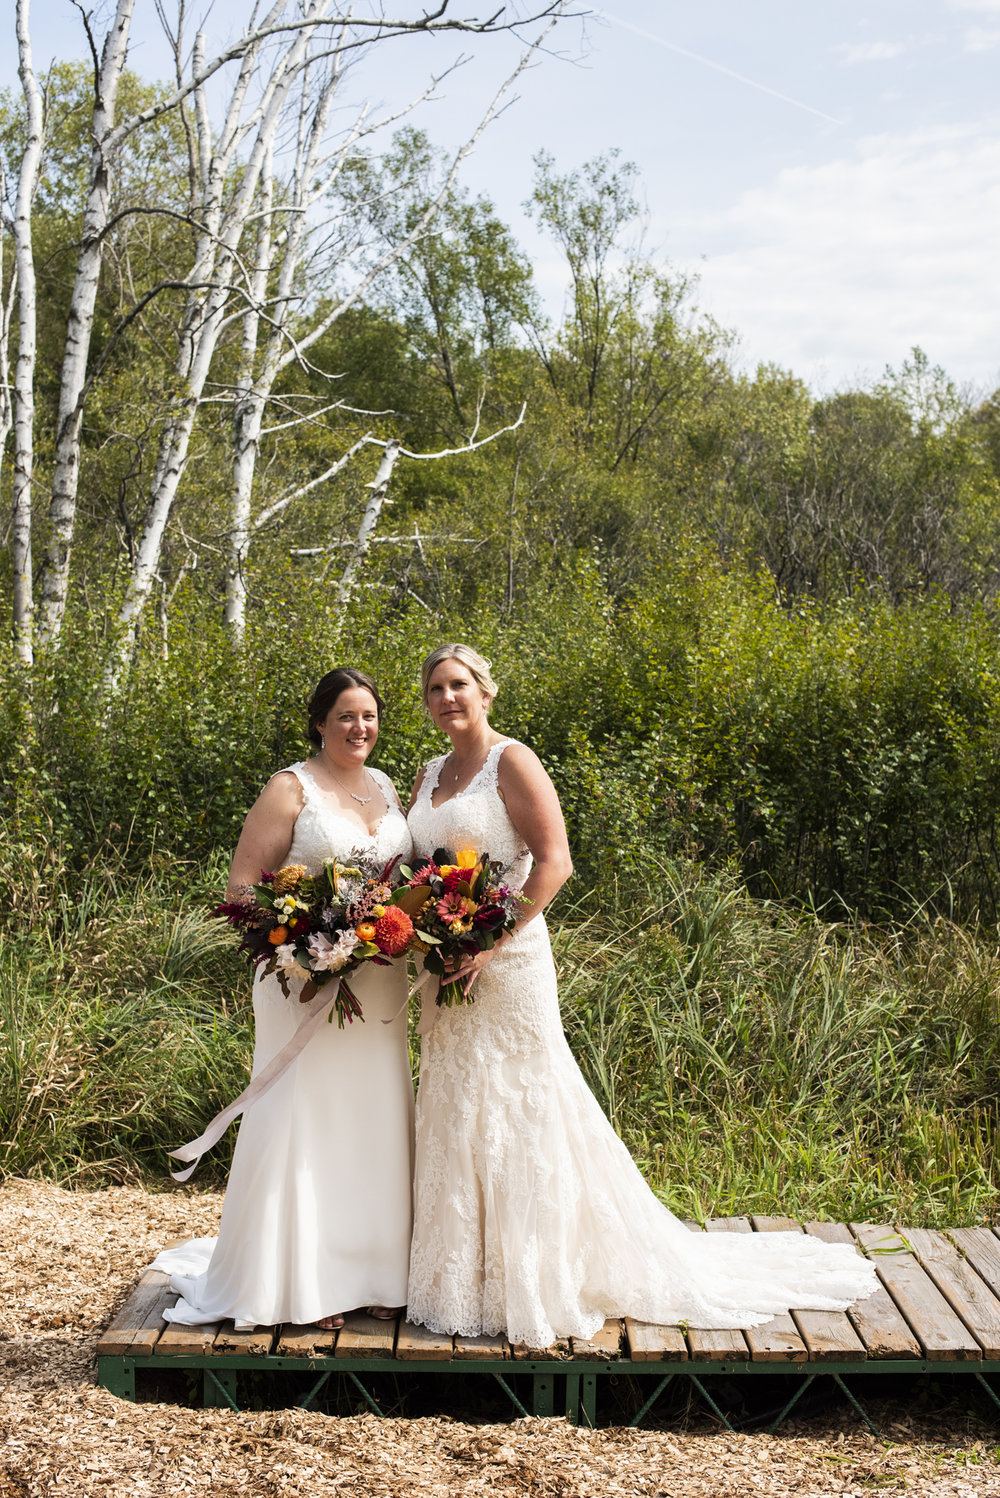 Breezy Point Resort Wedding, Minnesota | Photography by Melissa Hesse | Rivets & Roses